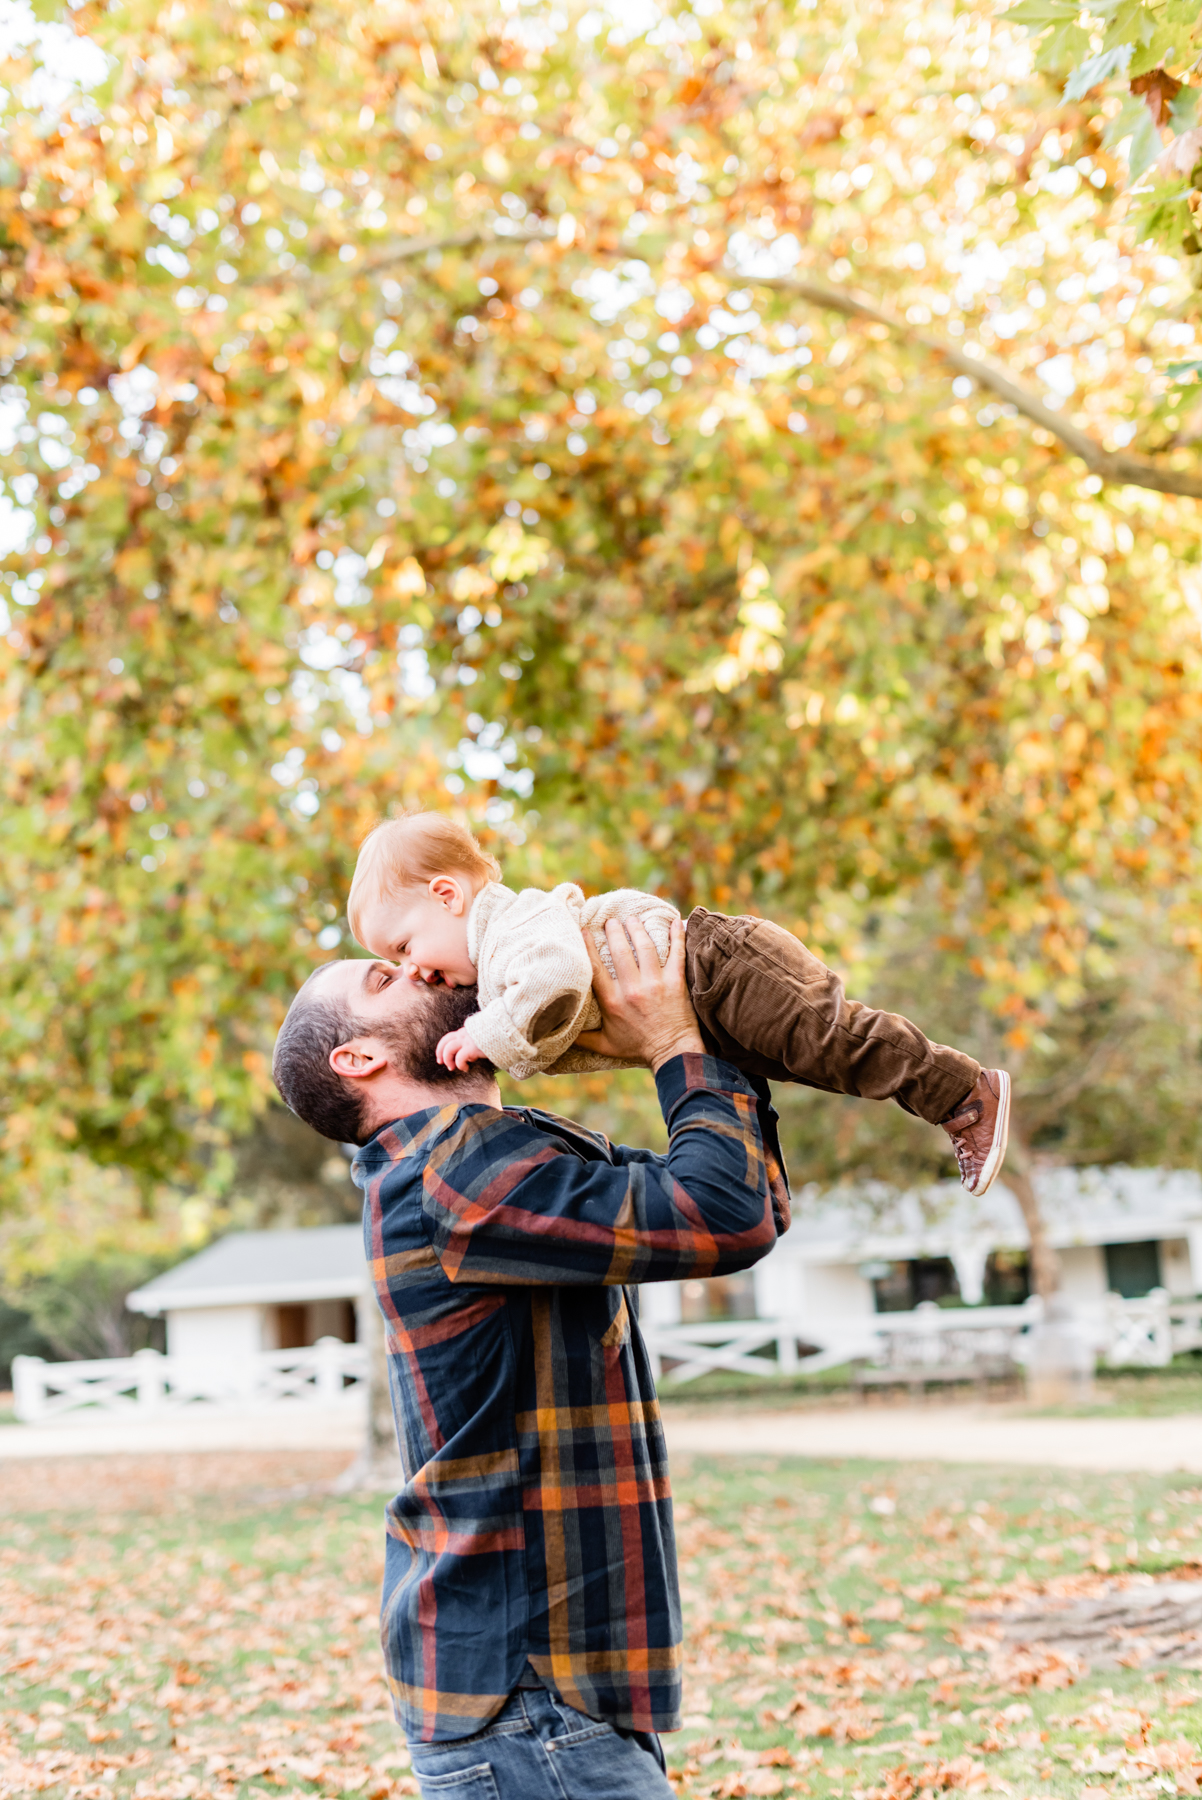 Father and son lifestyle session at Hap Magee Park in Danville, CA.